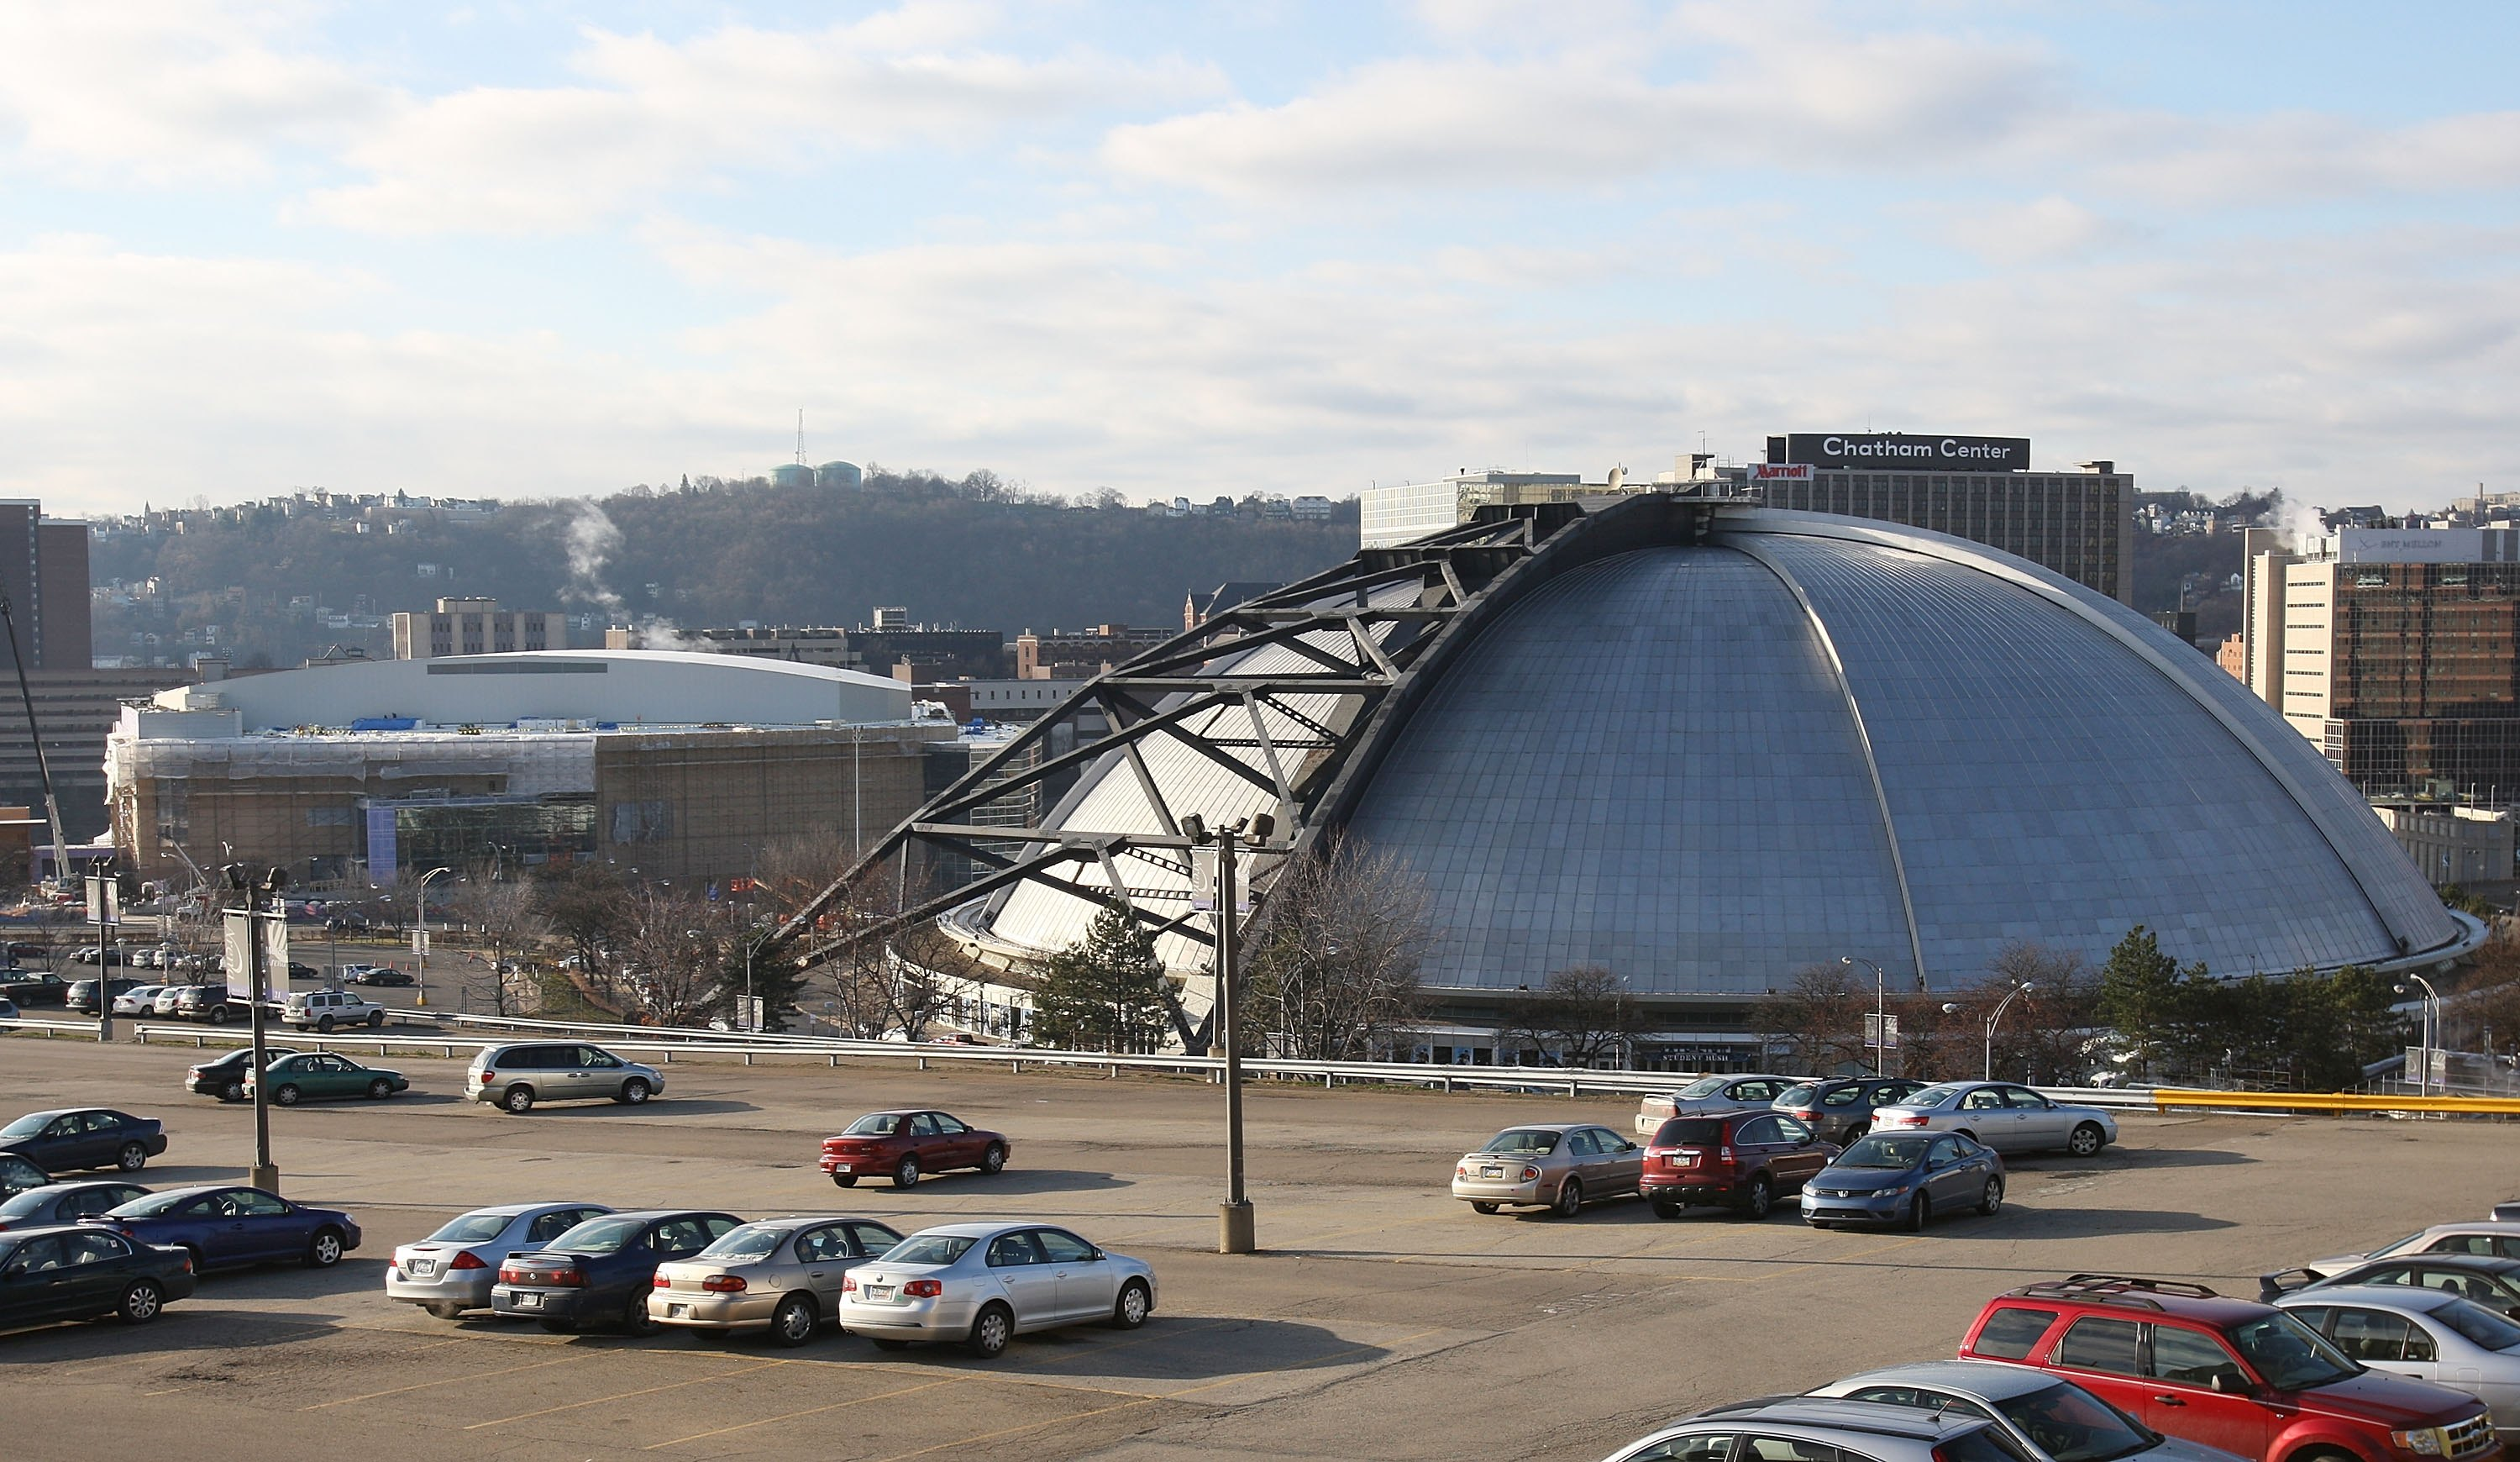 PITTSBURGH - DECEMBER 15:  The future home of the Pittsburgh Penguins, the Consol Energy Center in the background along with teh Mellon Arena in teh foreground as photographed on December 15, 2009 in Pittsburgh, Pennsylvania.  (Photo by Bruce Bennett/Gett